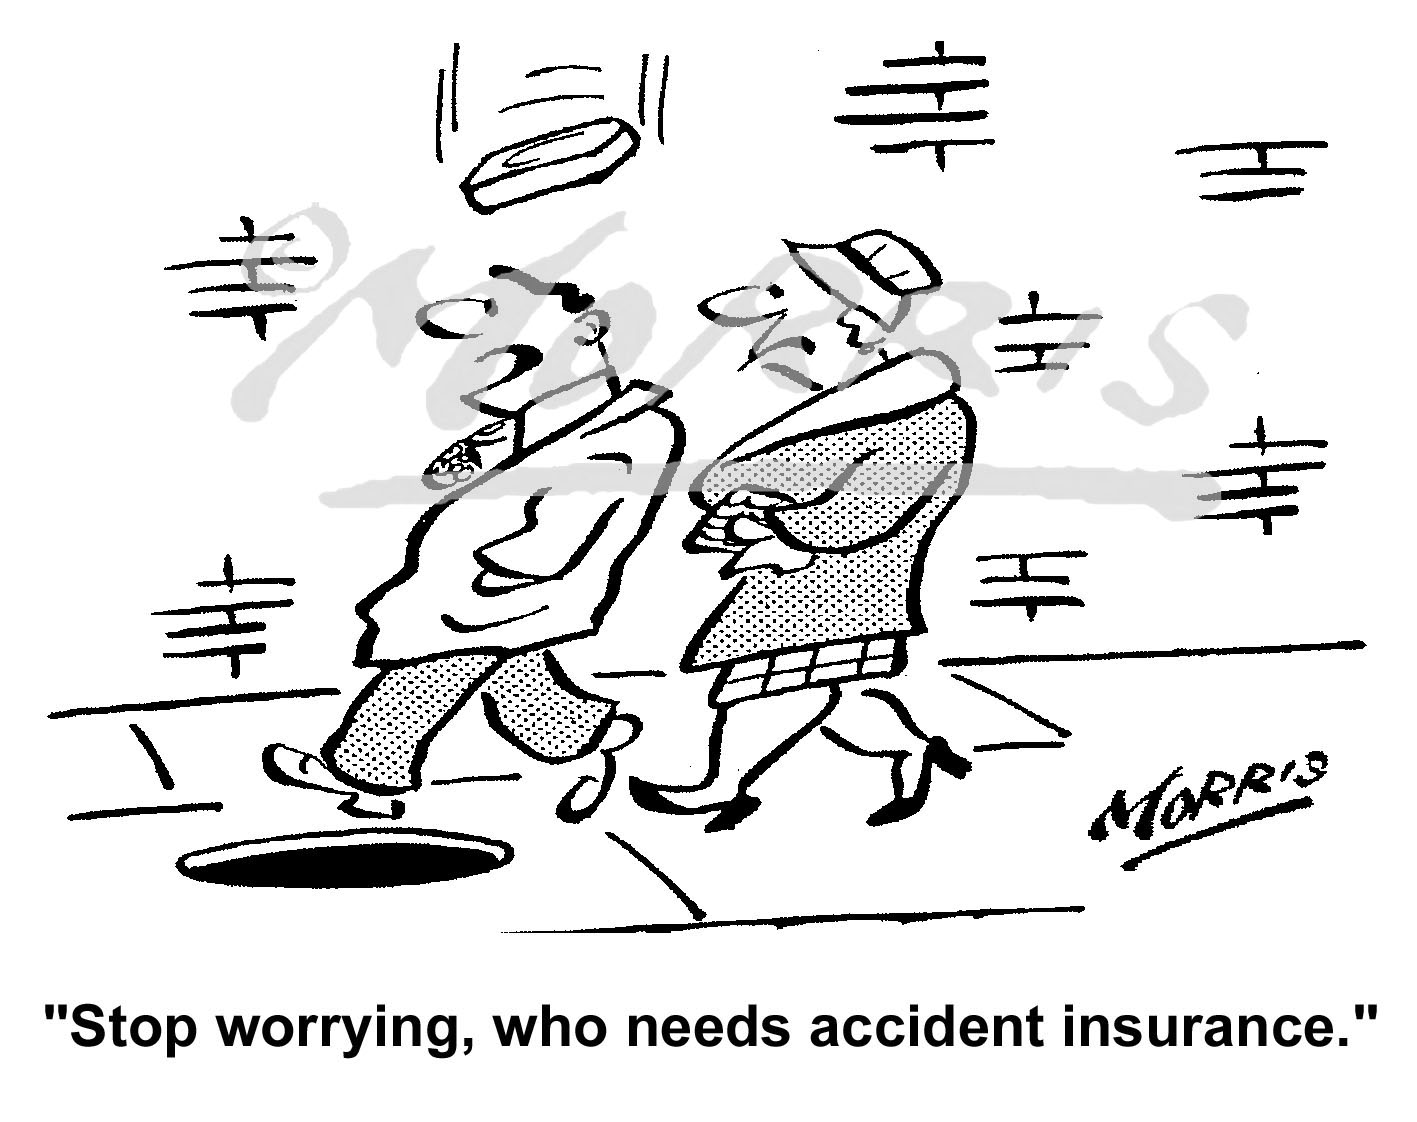 Personal Insurance cartoon – Ref: 6342bw